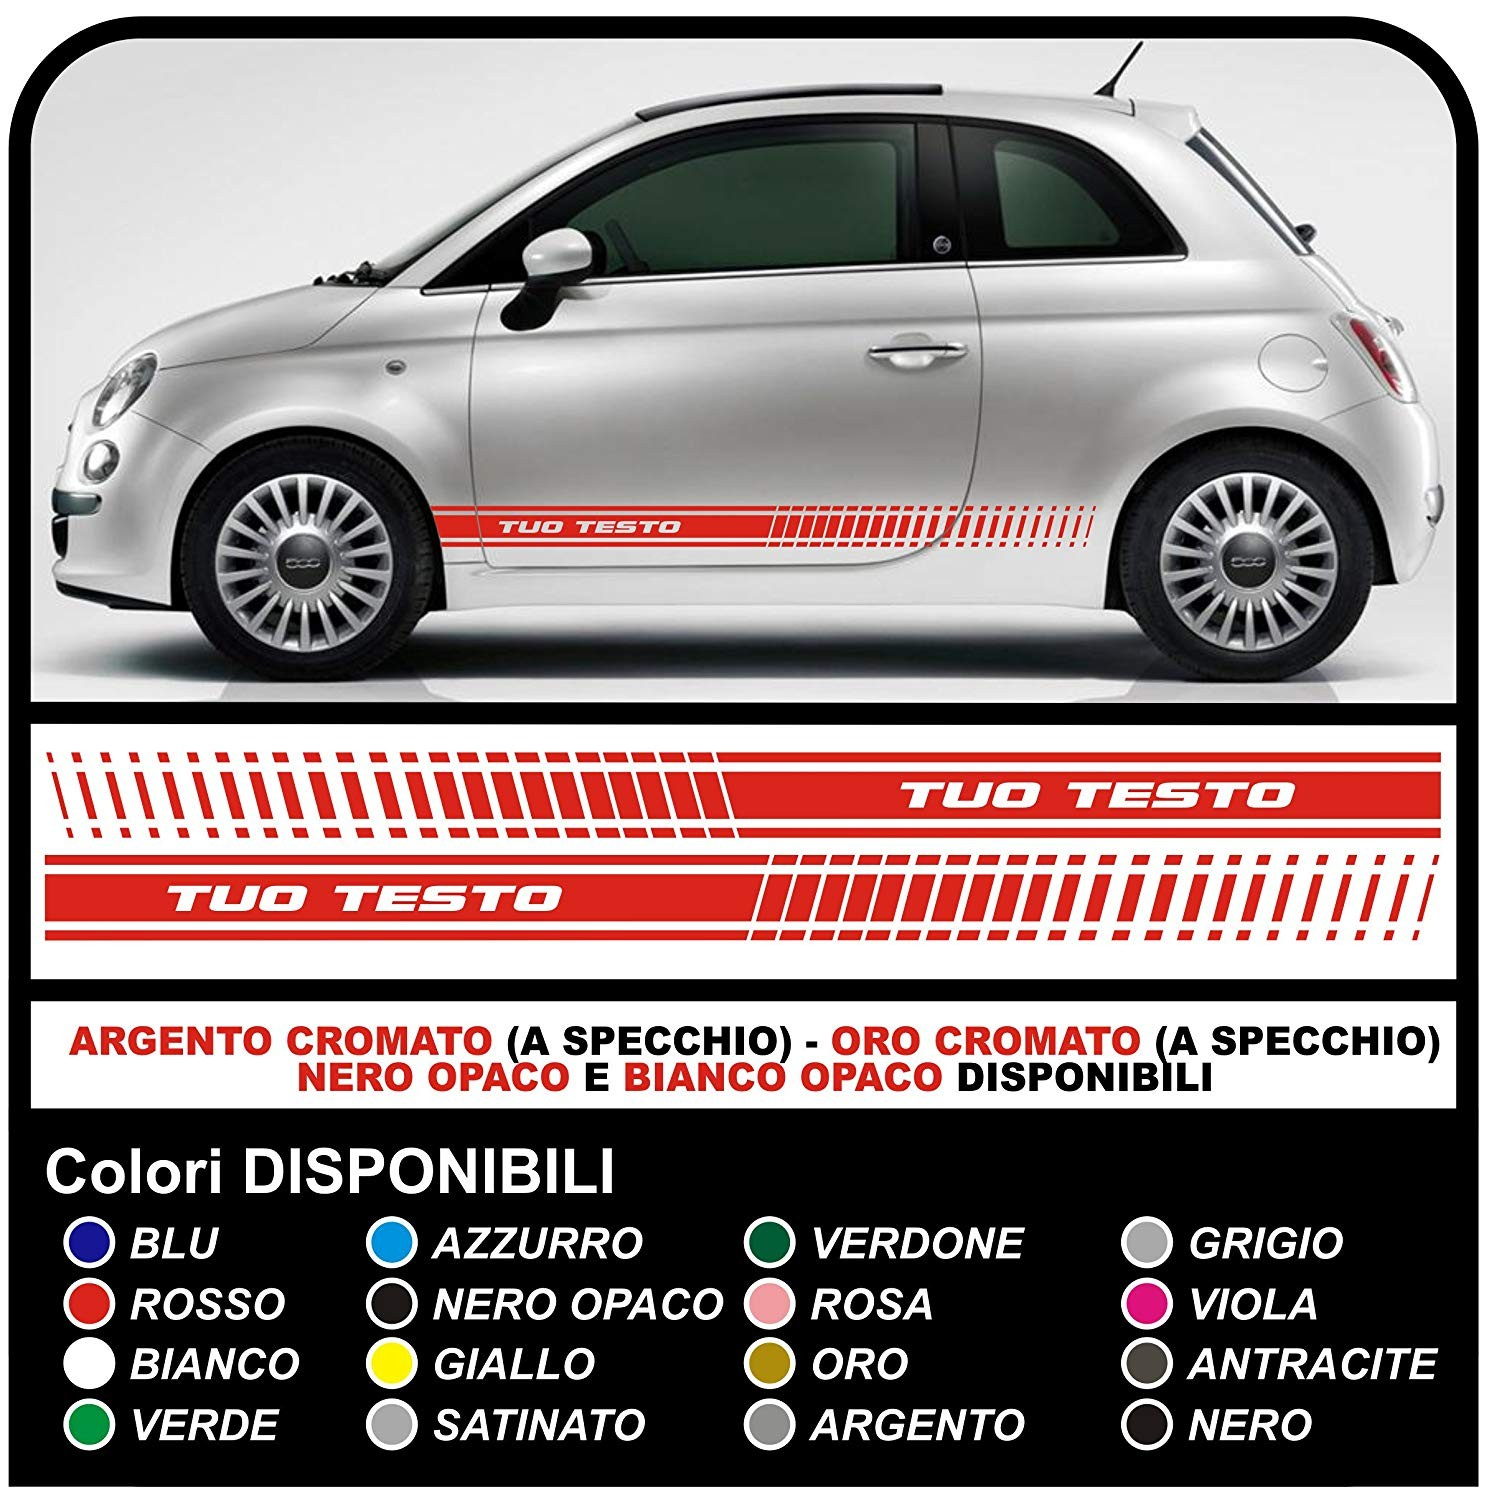 Stickers abarth side side panels for the fiat 500 abarth stickers decals side side stickers fiat 500 custom jpg